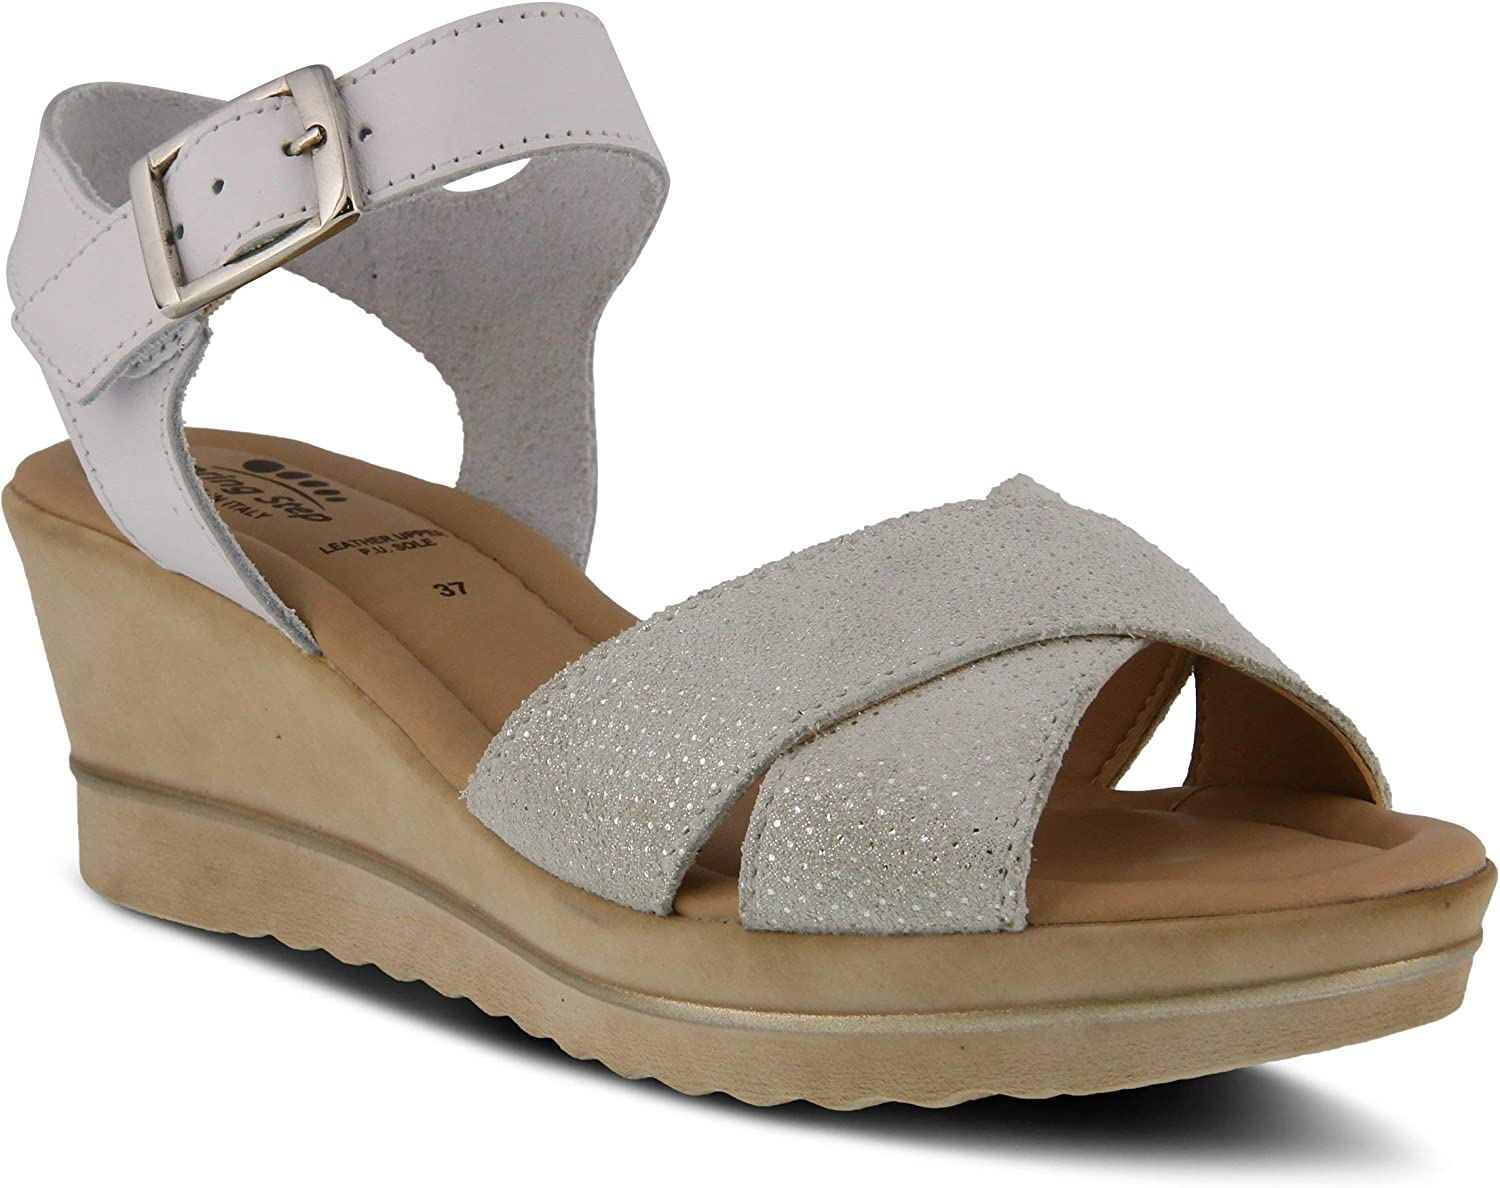 free shipping Spring Step Women's Sandal Wedge Rochelle Max 44% OFF